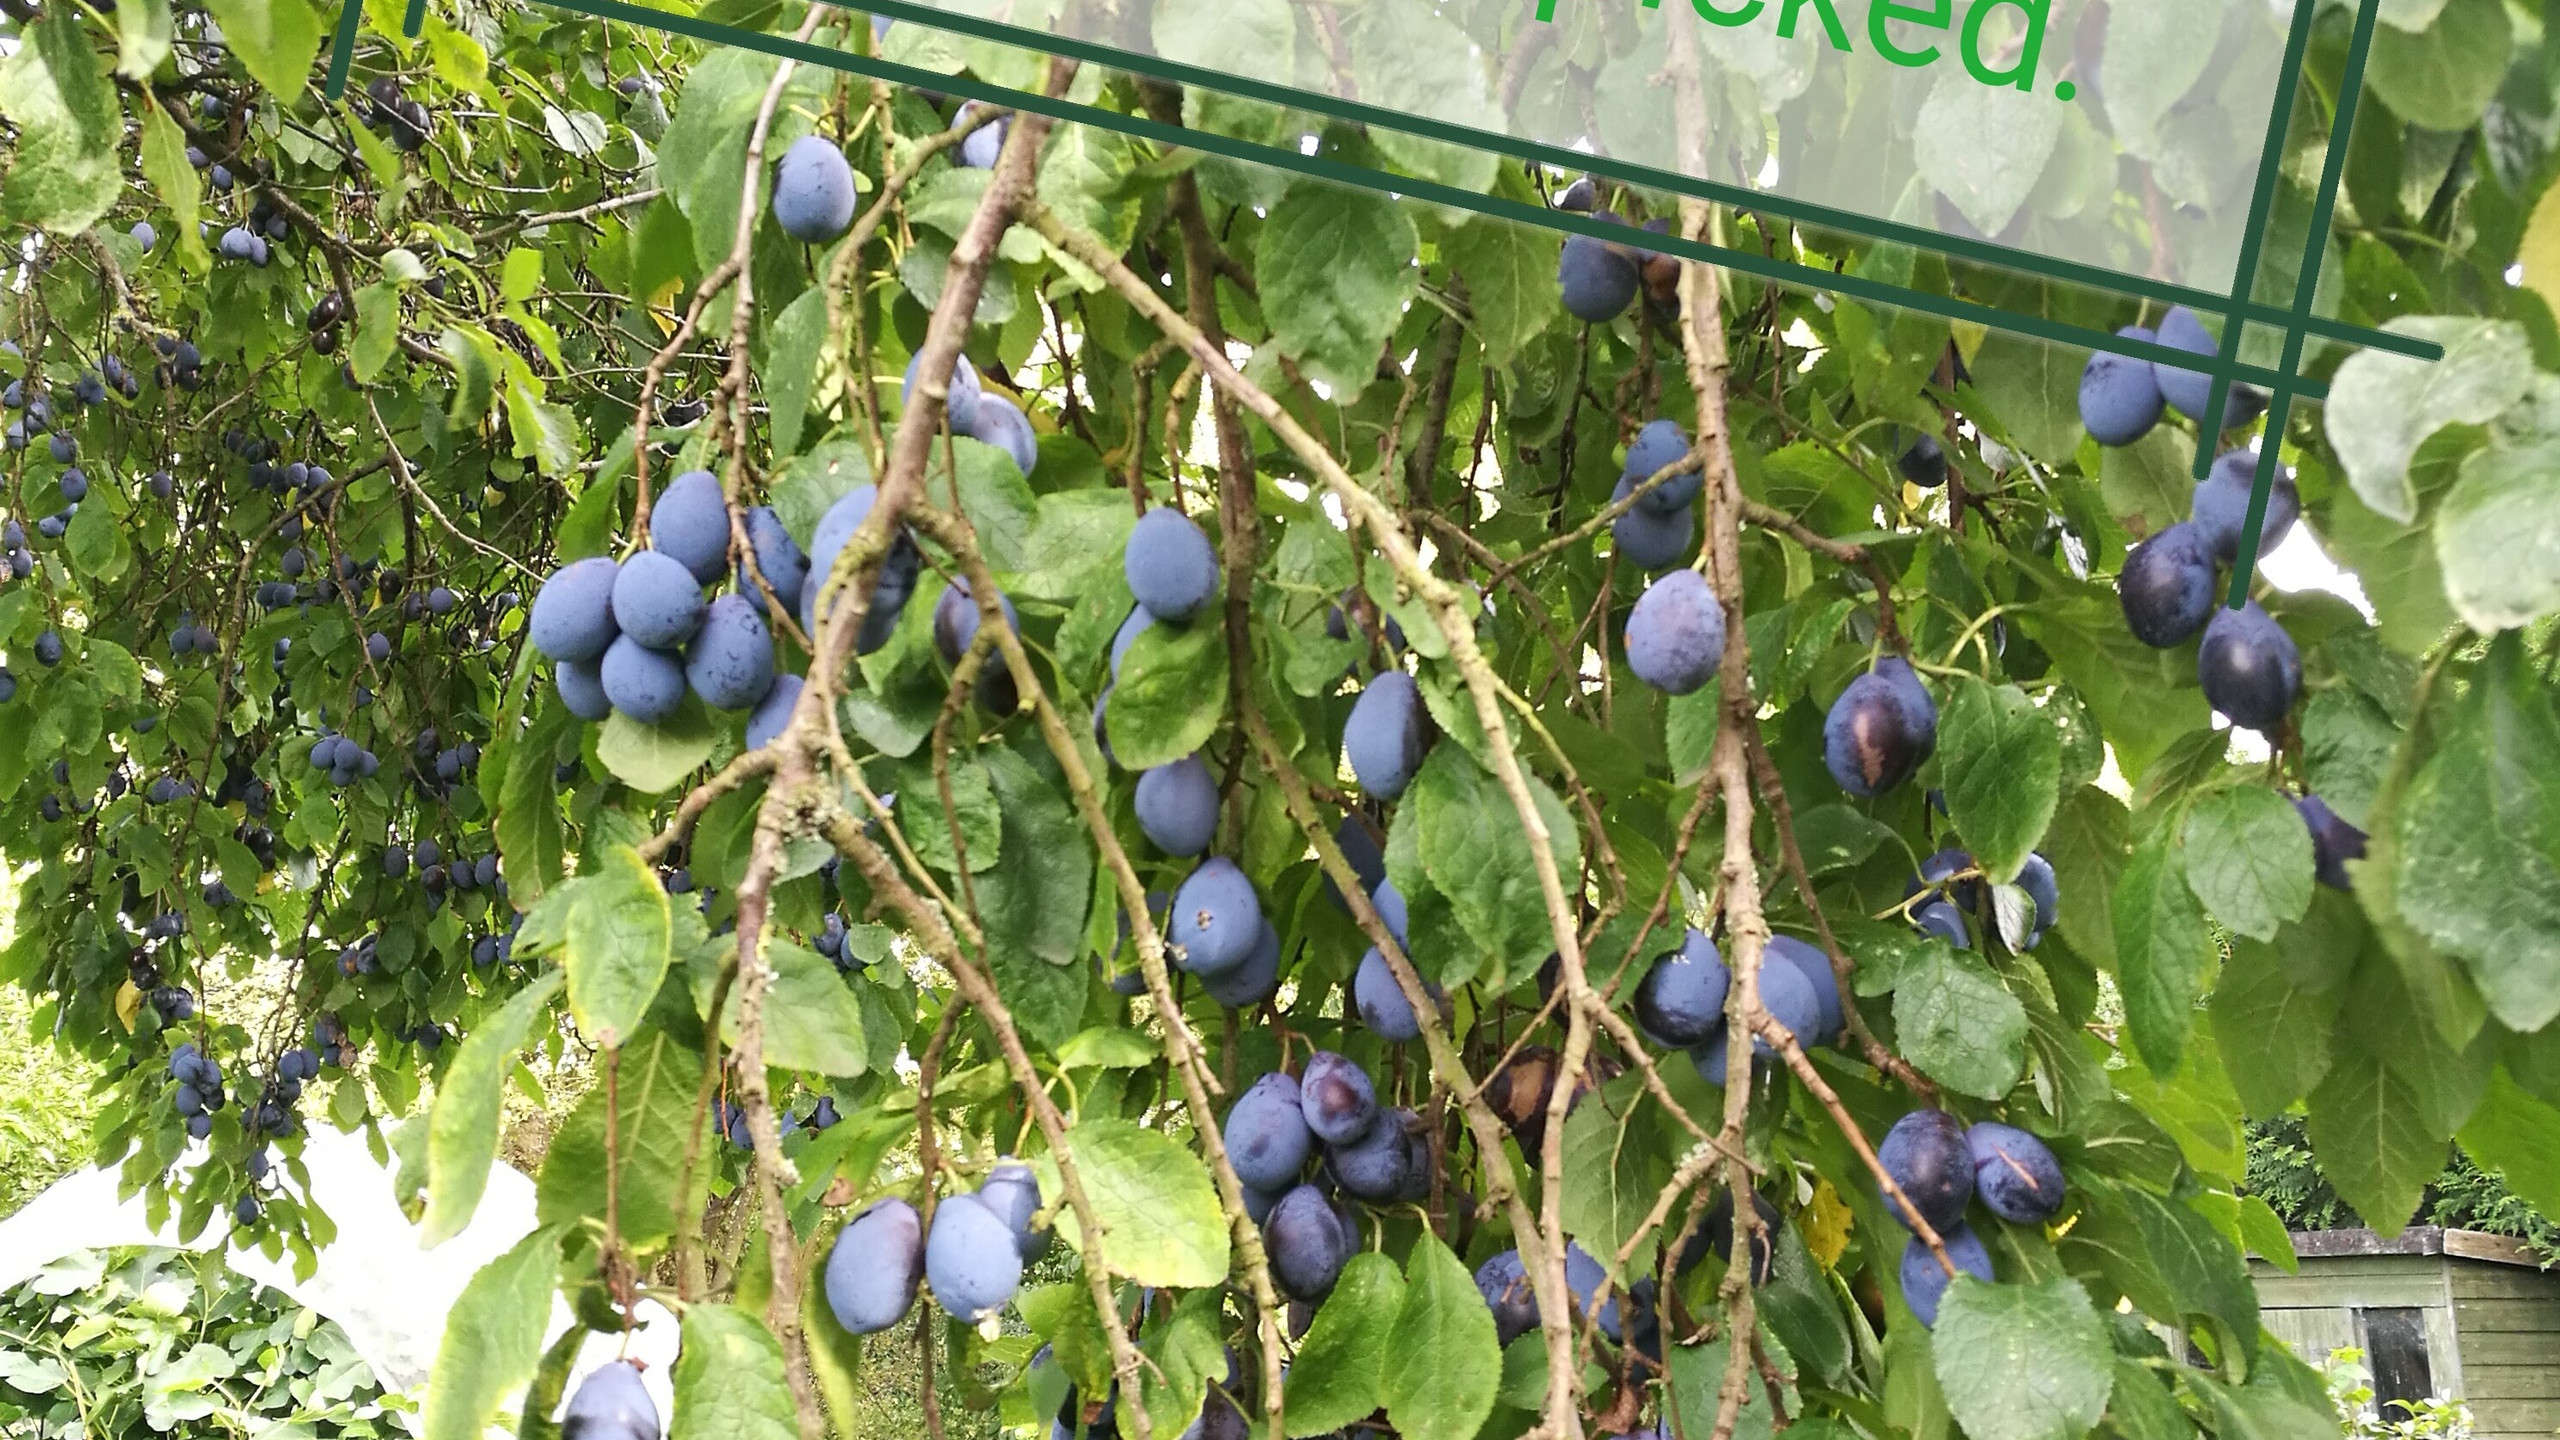 Damsons waiting to be picked